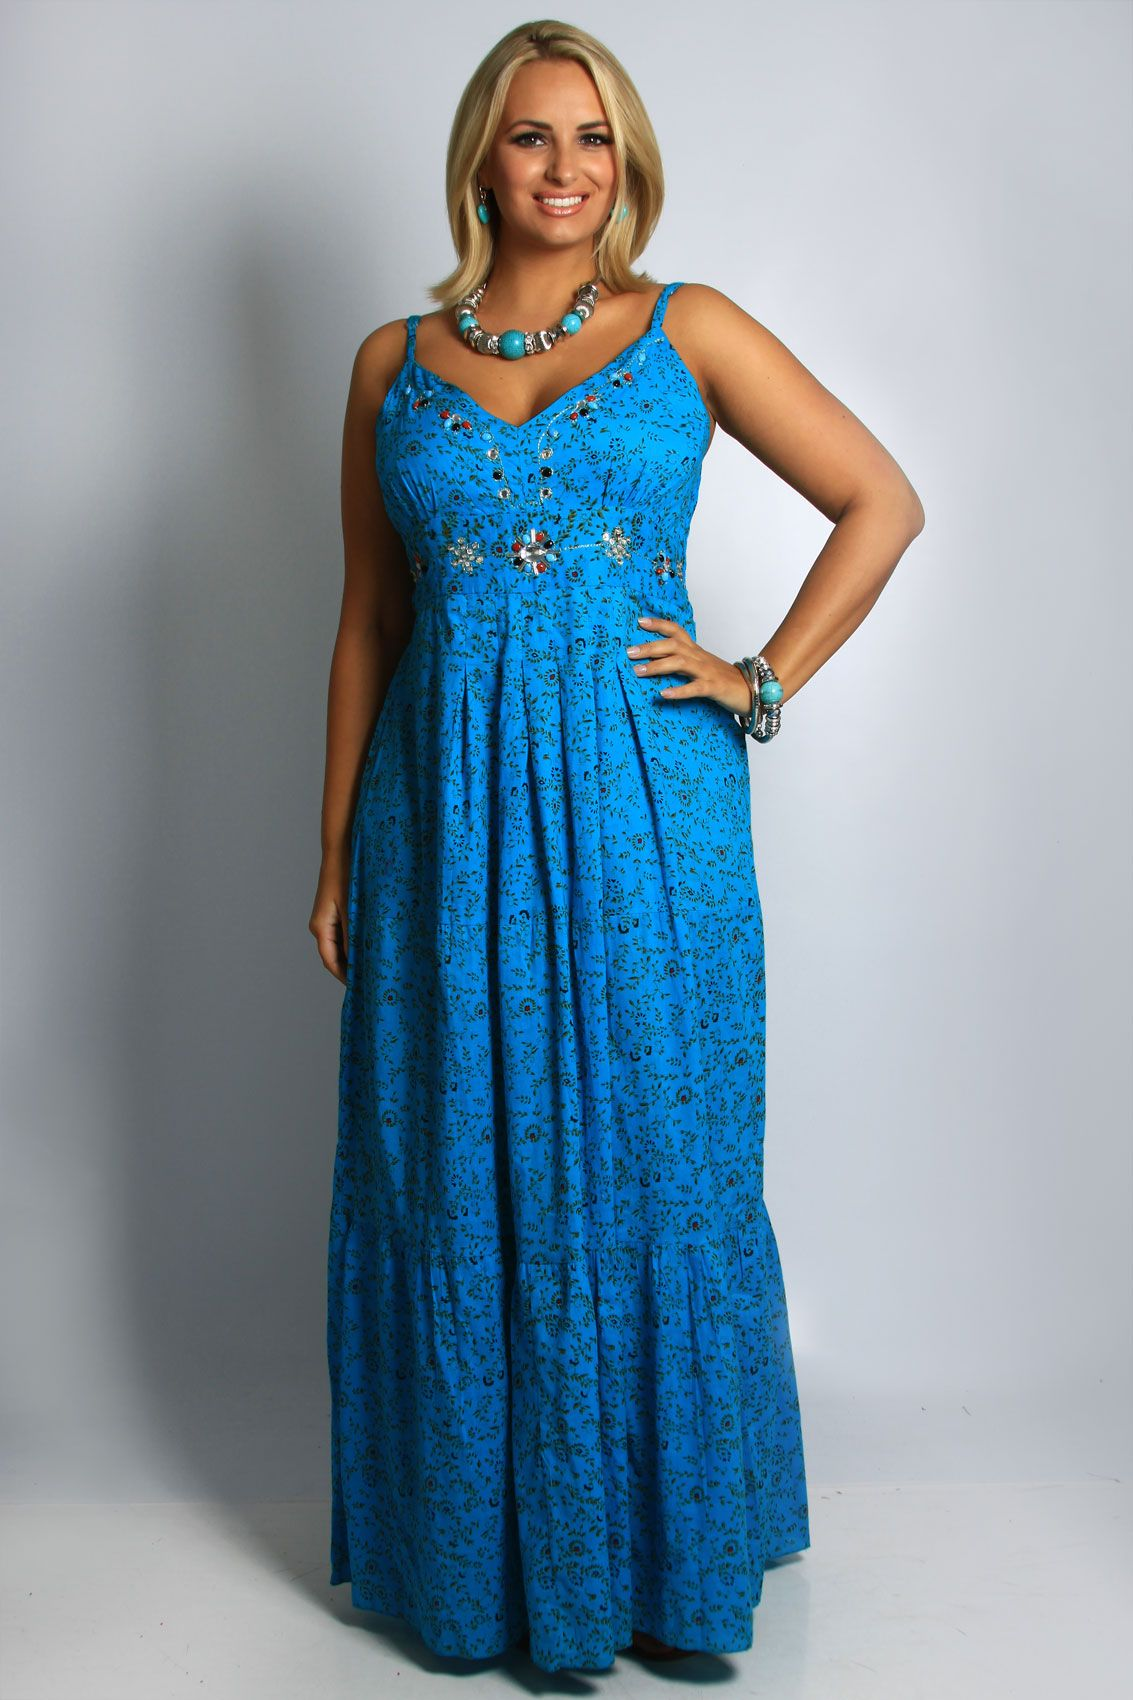 pictures of turquoise items | Turquoise Jewel Detail Printed Maxi ...